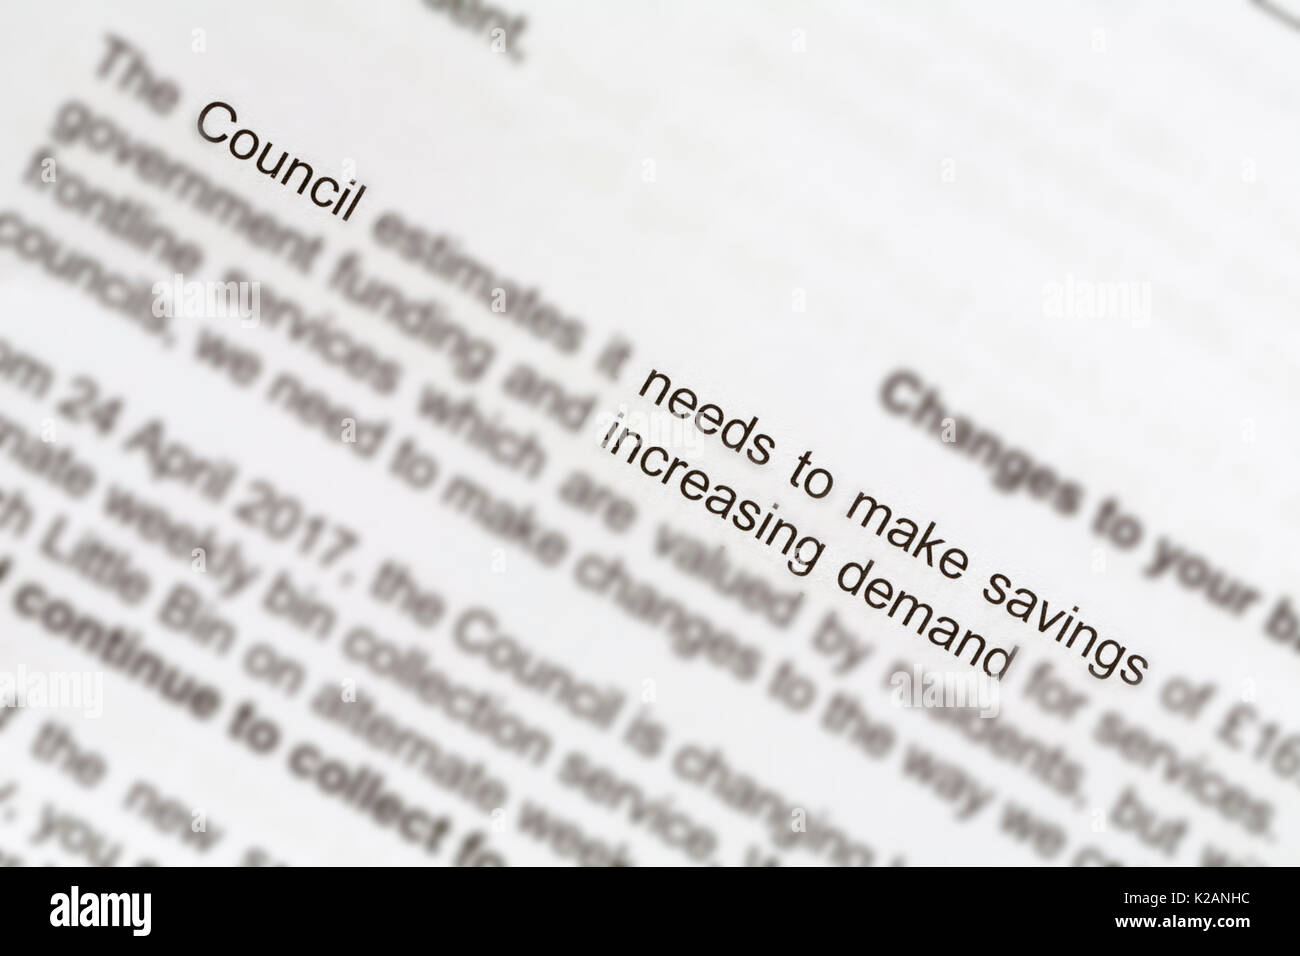 Letter from council advising of changes to bin collections to fortnightly bin collections because of cuts in government - Stock Image